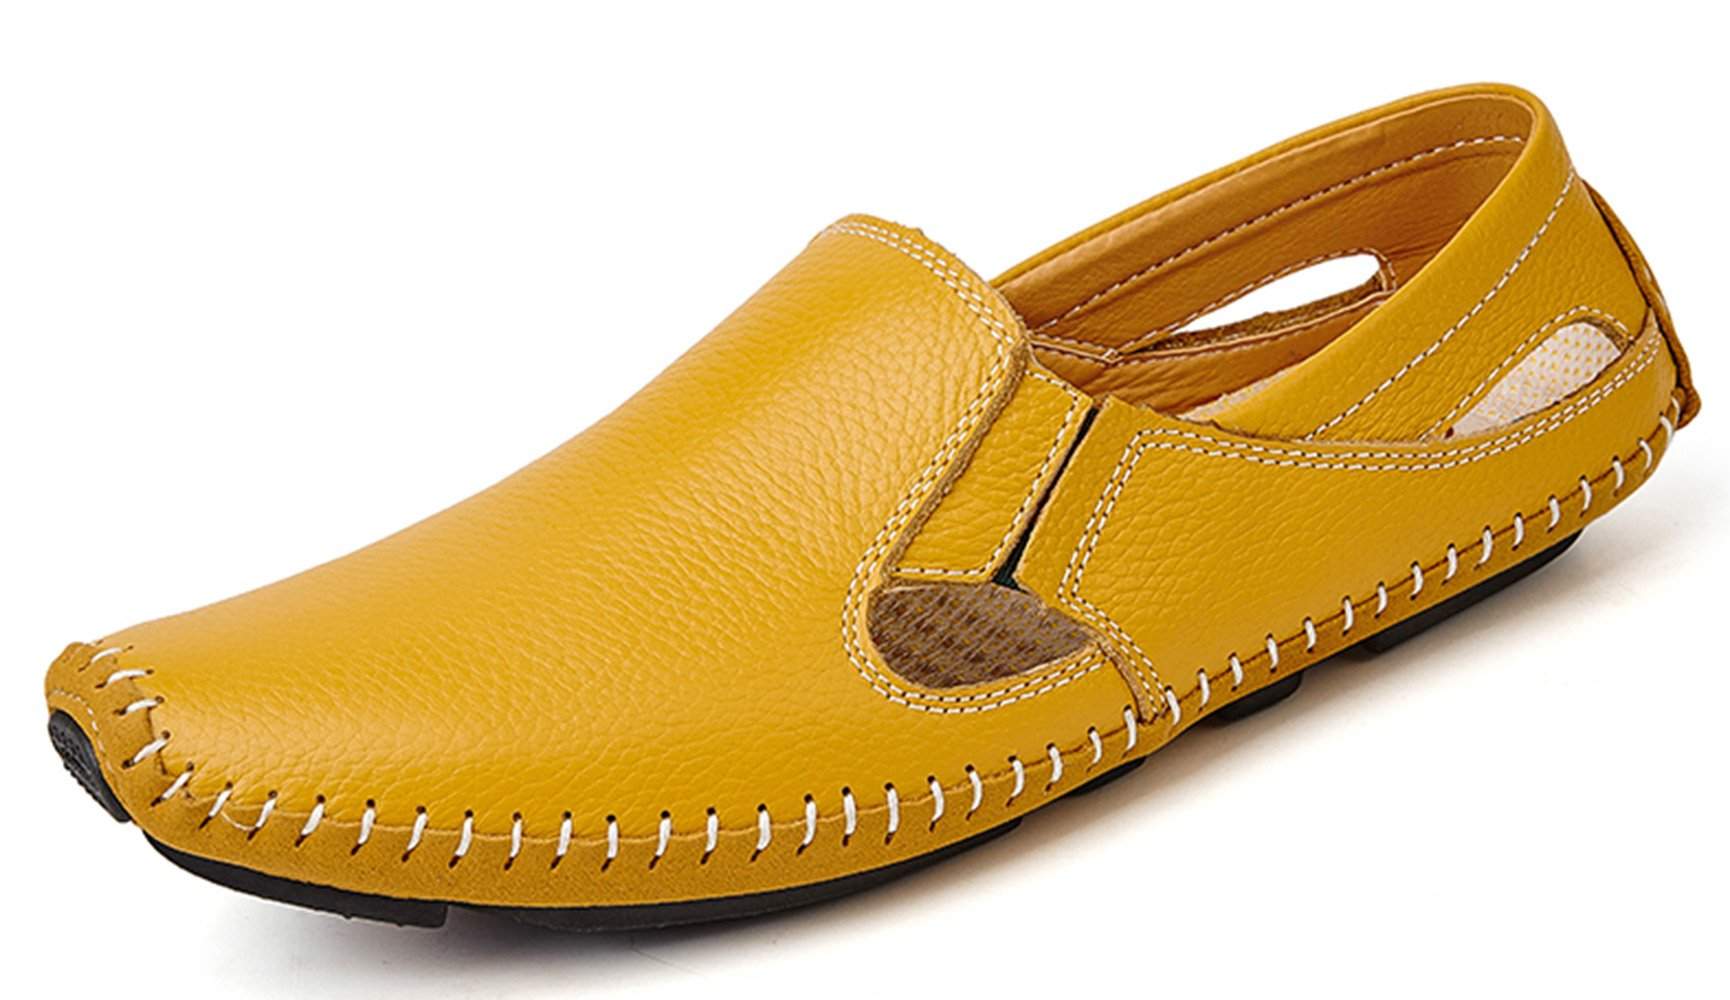 YZHYXS Men Leather Driving Shoes Fashion Slippers Casual Slip on Walking Loafers Shoes Summer Yellow Size 11.5 (932-yellow-46)